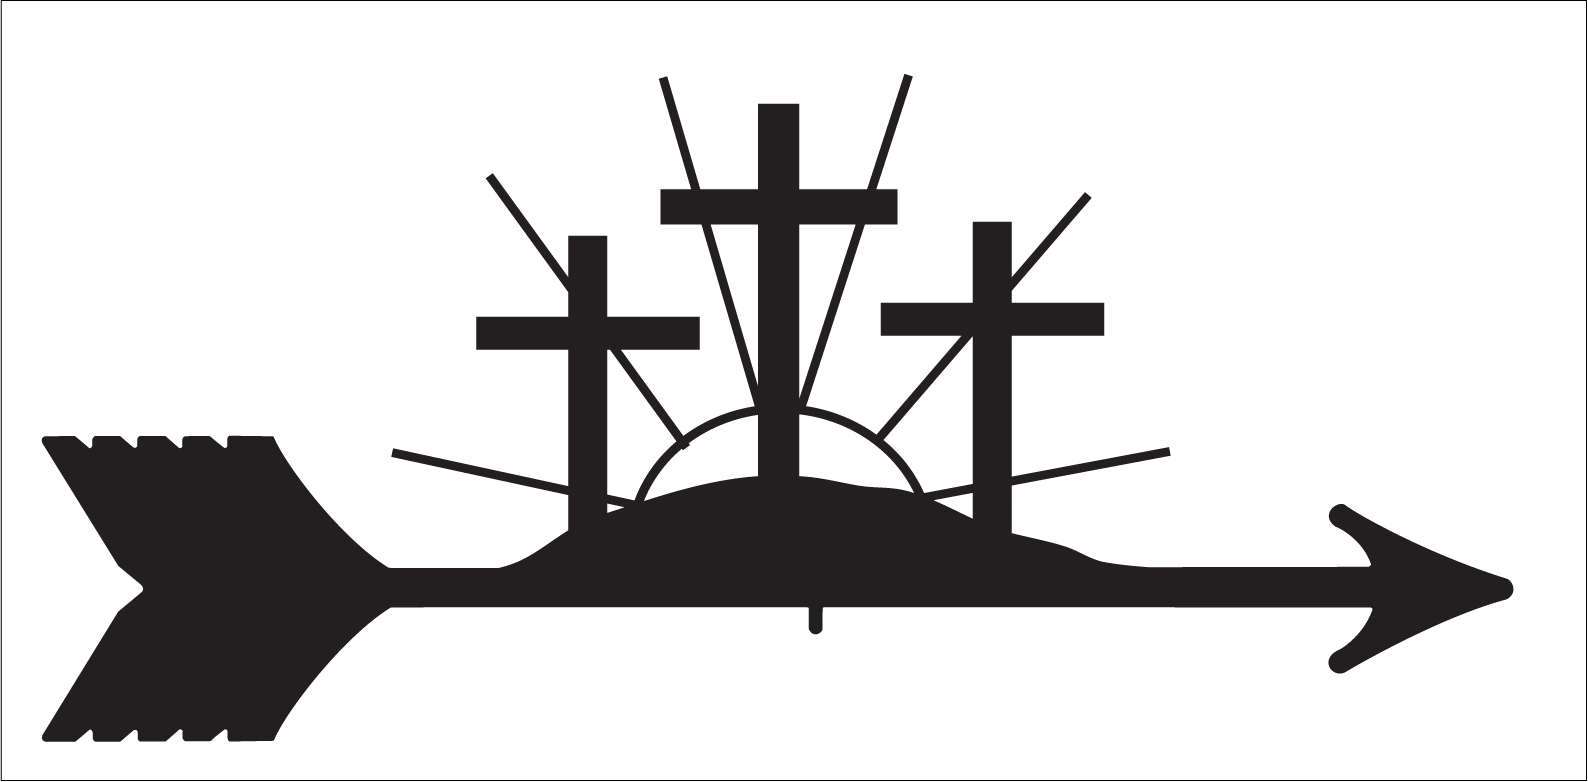 3 Crosses Clipart 24 Free Cliparts